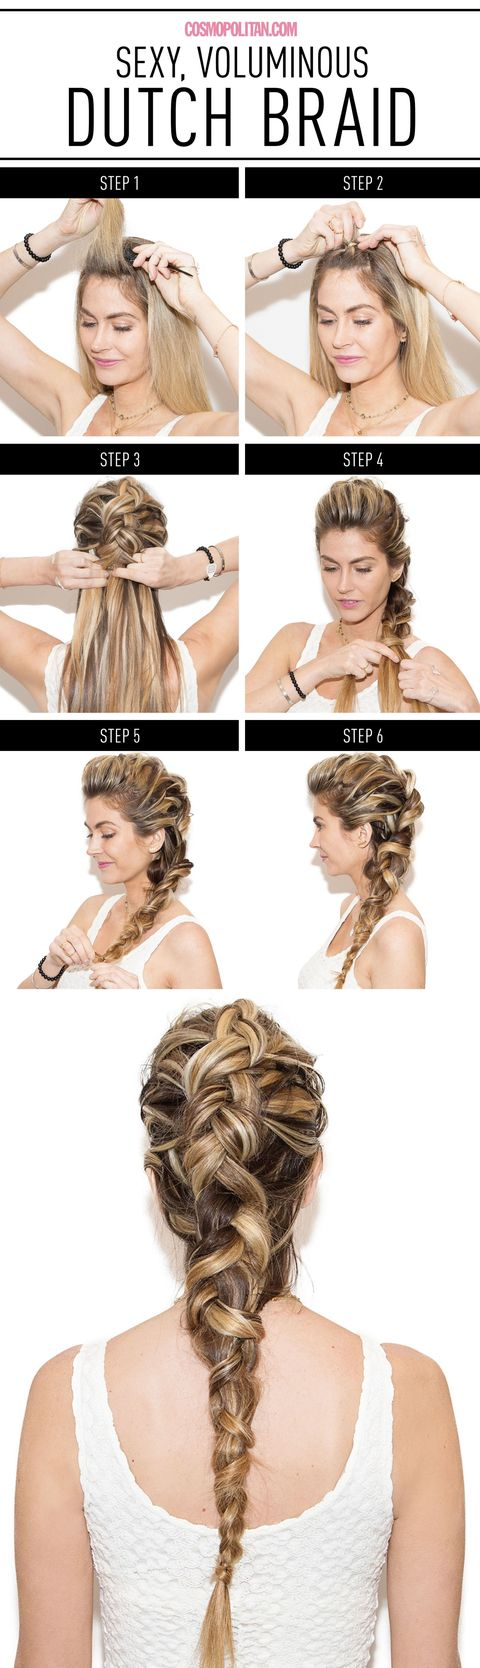 Dutch Braid How To Khalessi Braid Tutorial How To French Braid Inverted  Solution For How To 20easystepbystepsummerbraidsstyle